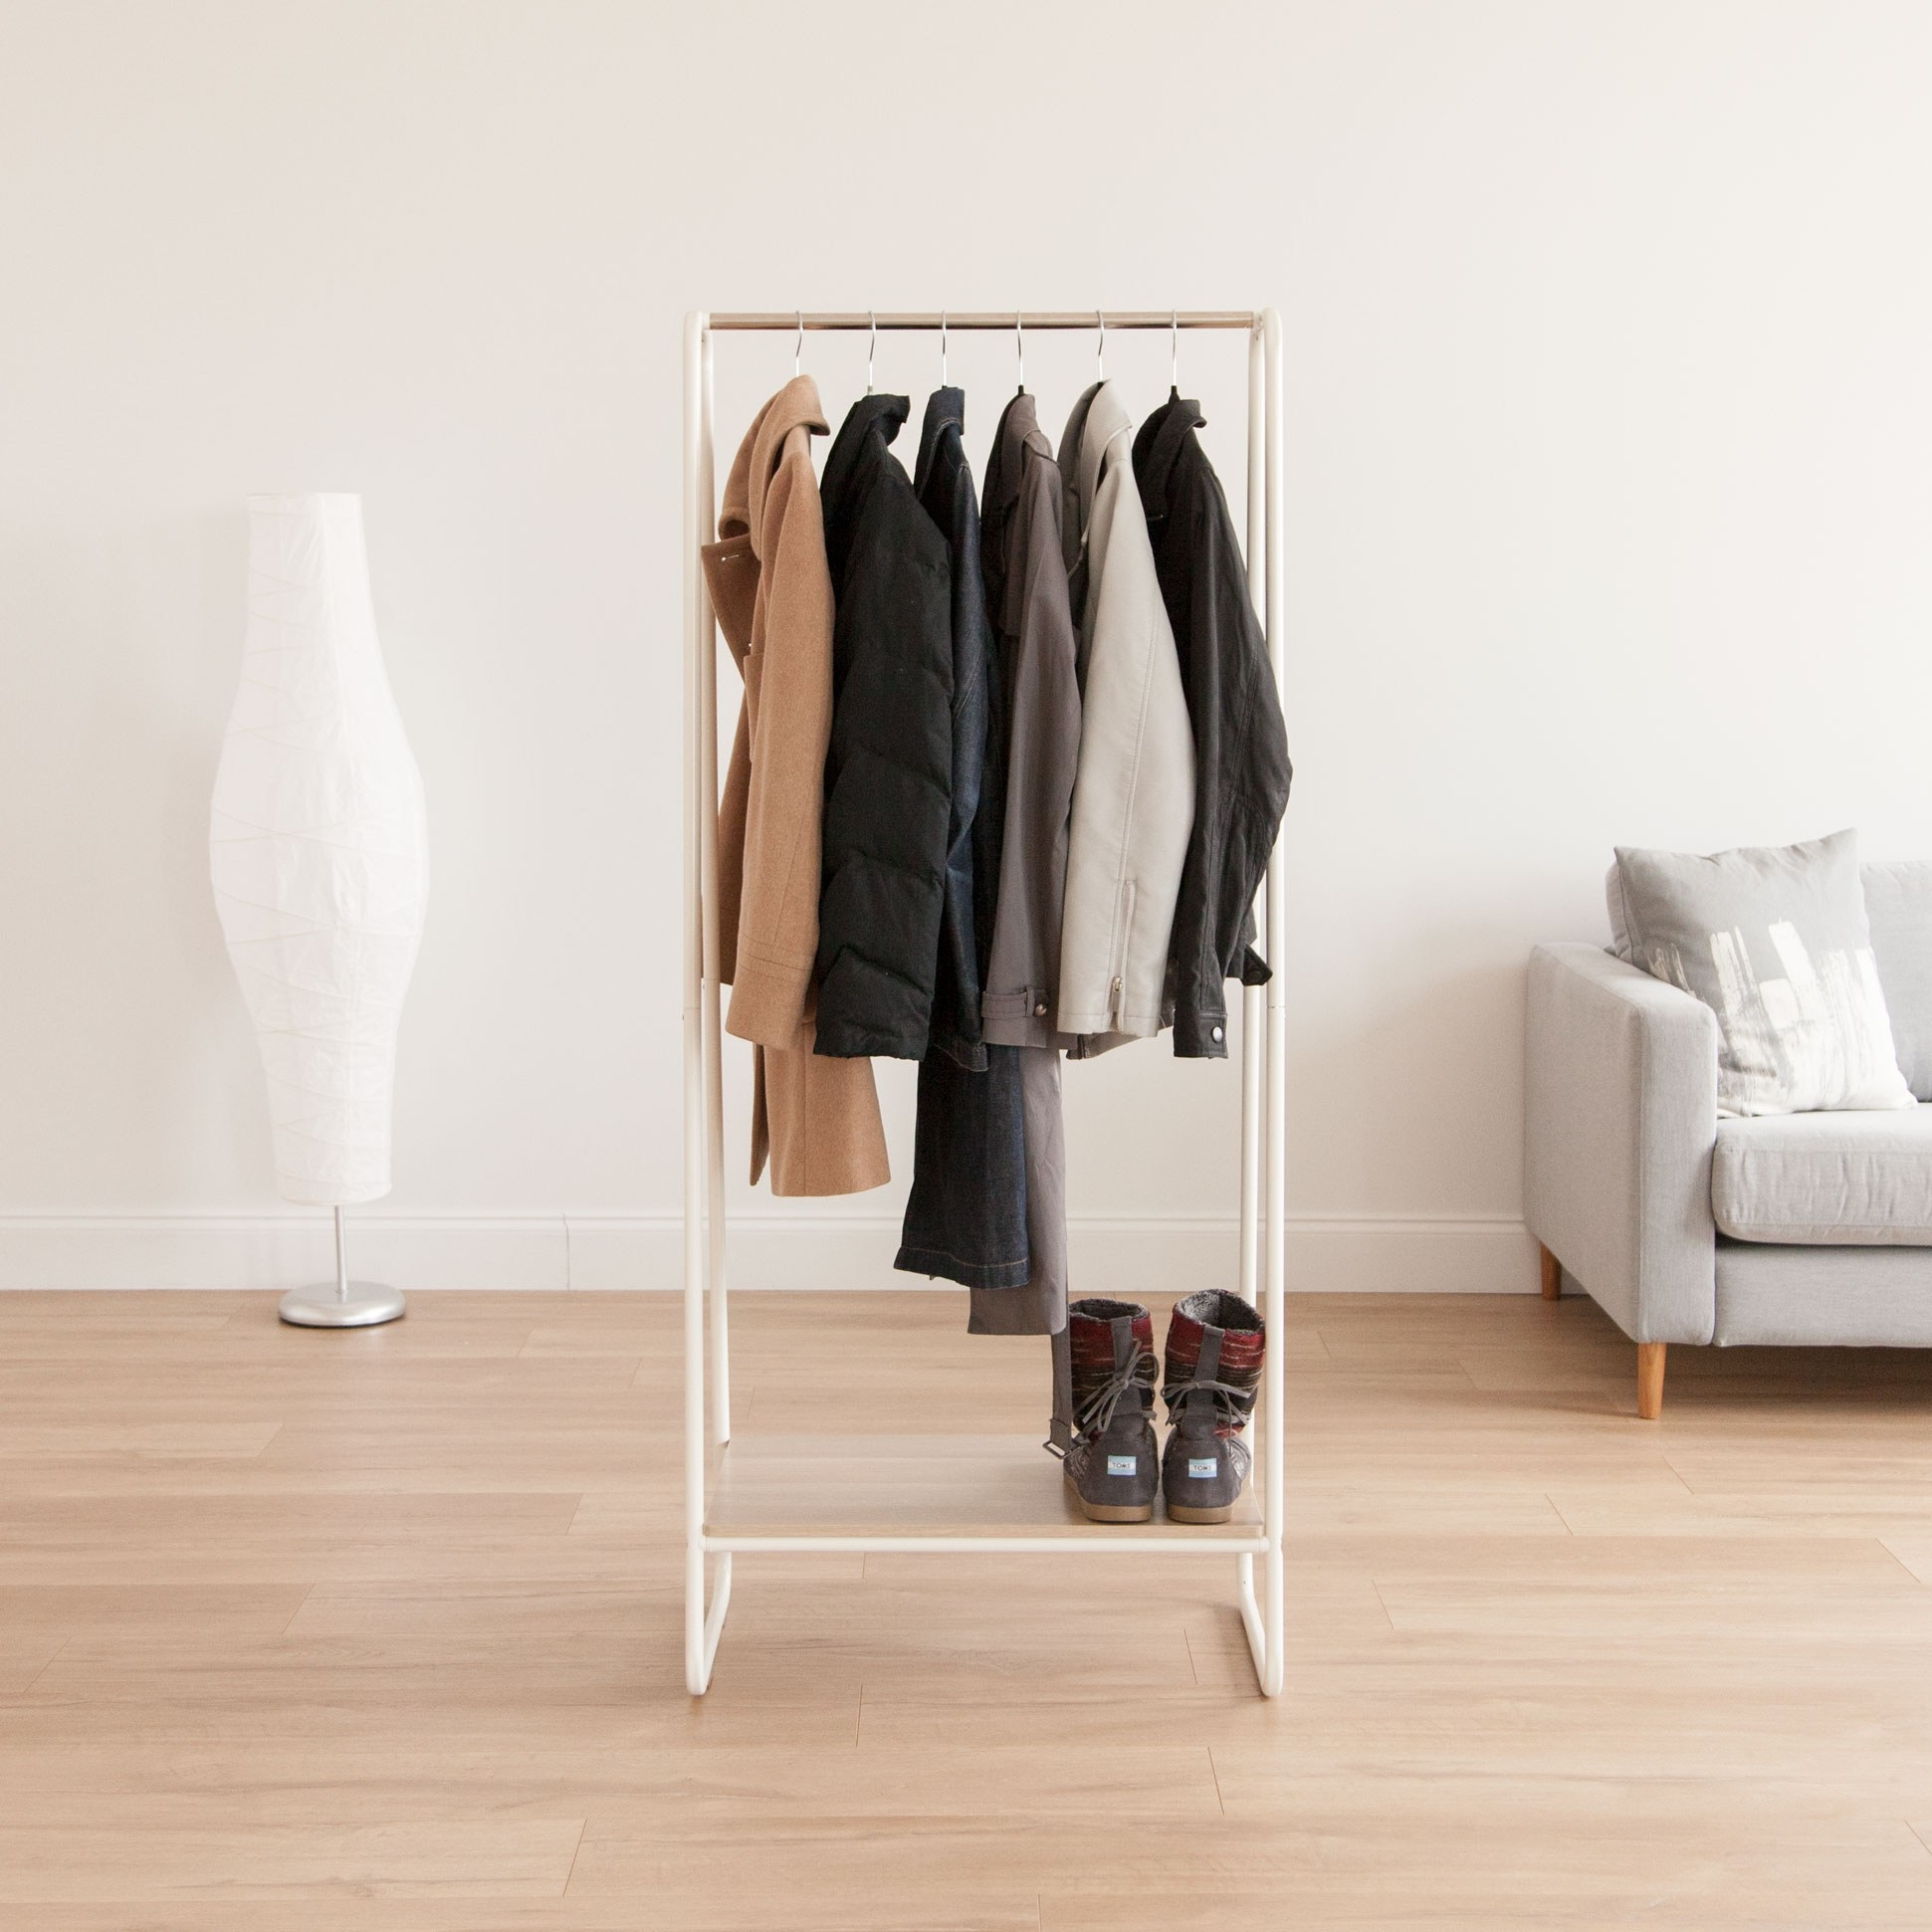 The garment rack in a room with several coats on it and a pair of shoes stored on the shelf underneath